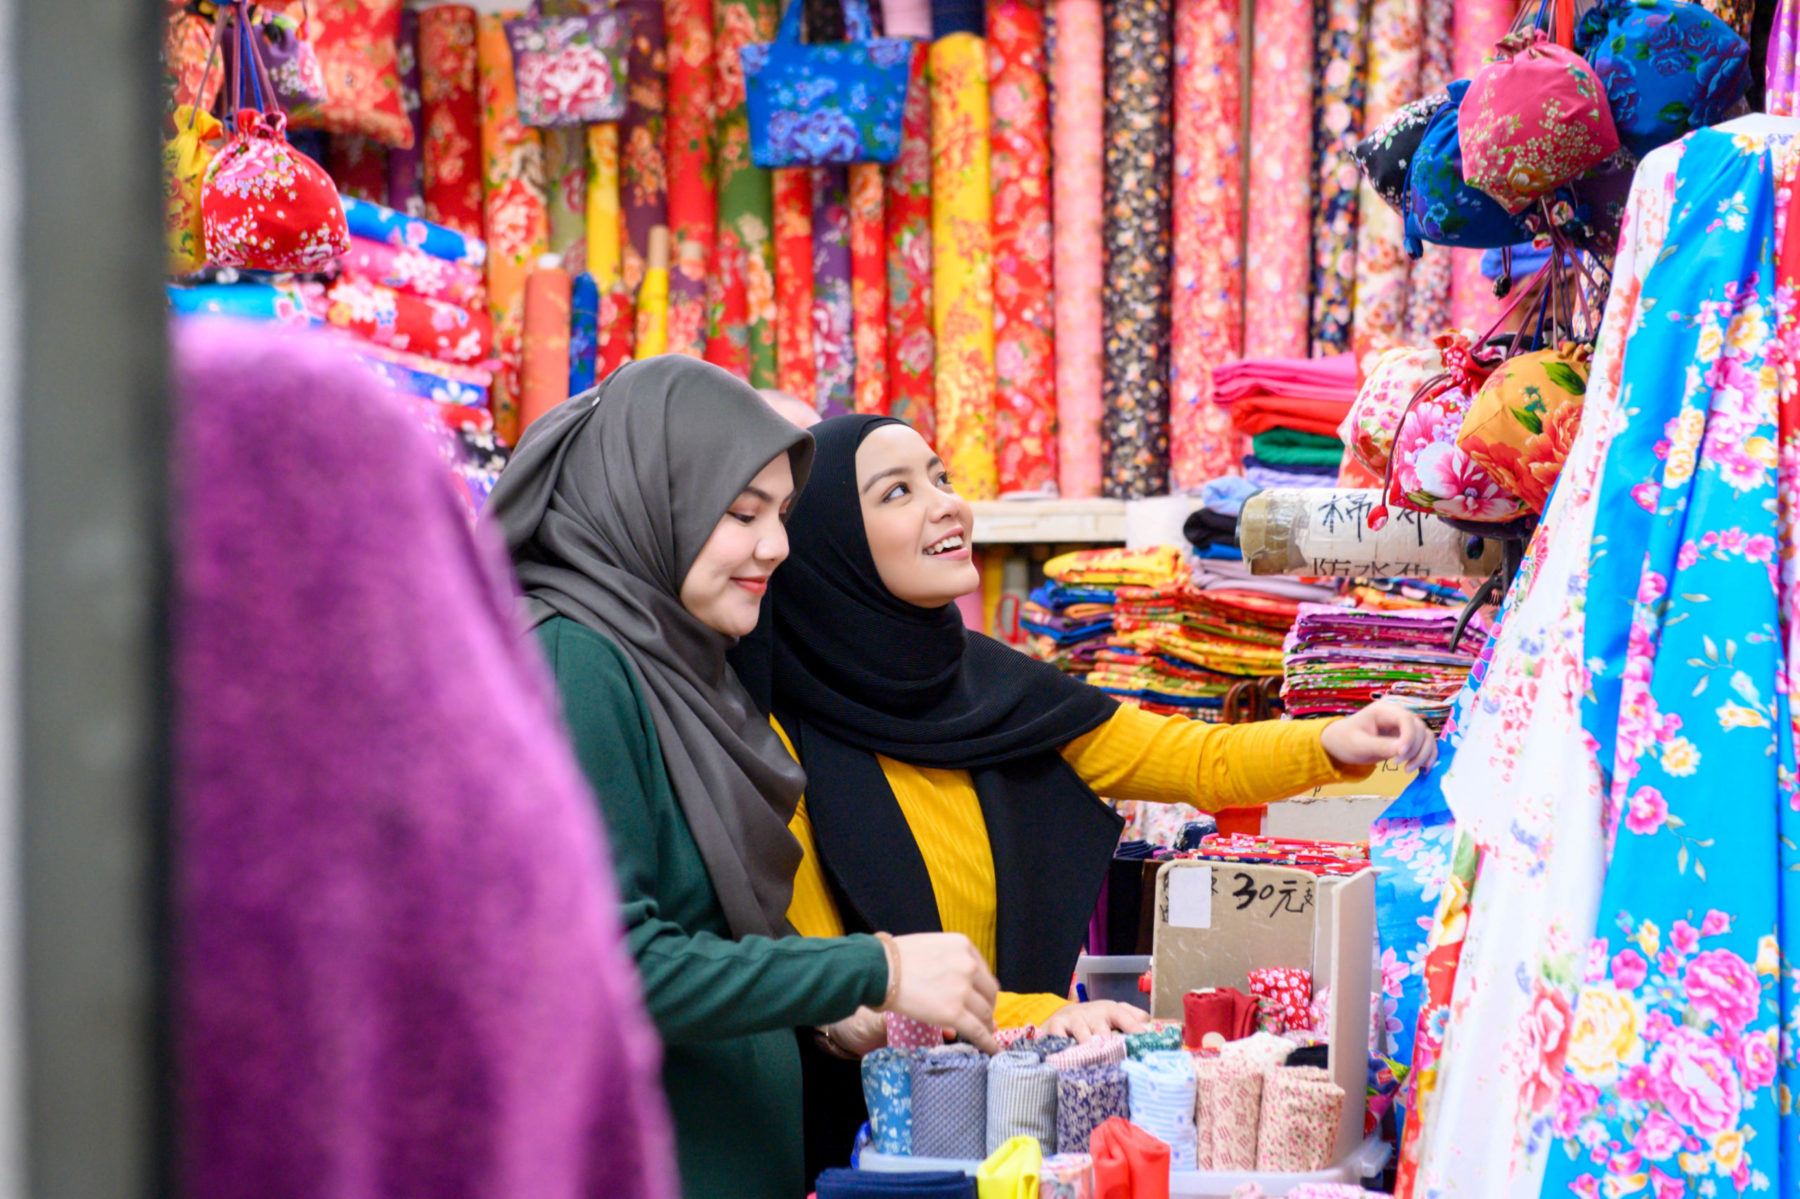 Salam Taiwan Ambassador, Mira Filzah, travelled to Taiwan to explore the hidden gems of the stunning island and documented her experience through Salam Taiwan's new TVC.